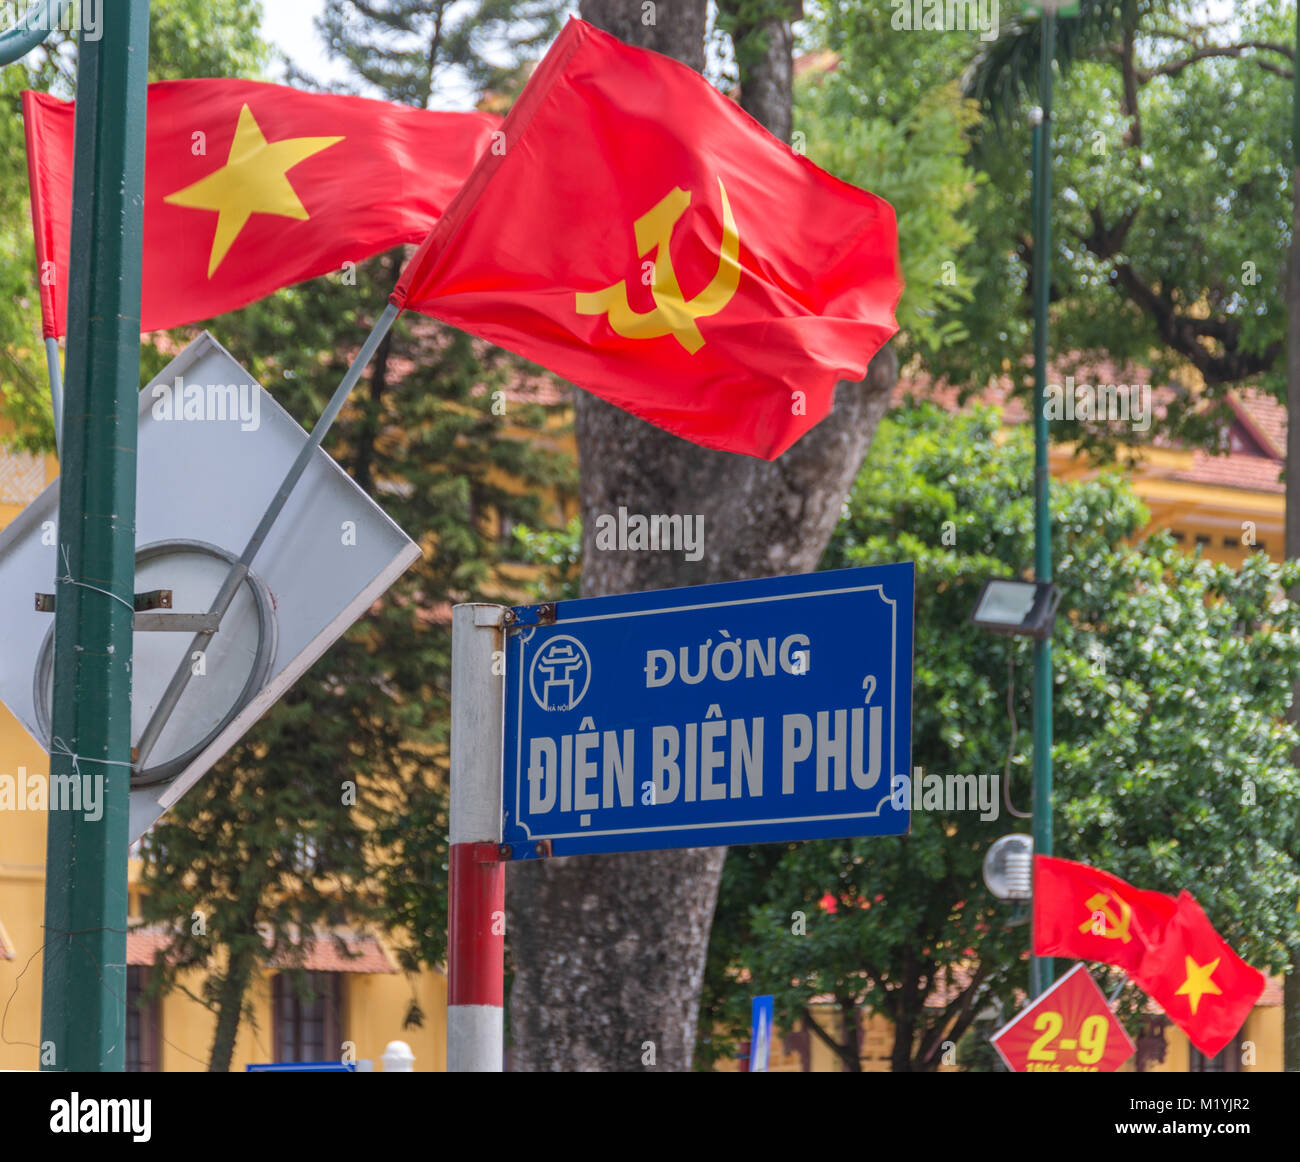 Vietnamese Street Sign High Resolution Stock Photography And Images Alamy